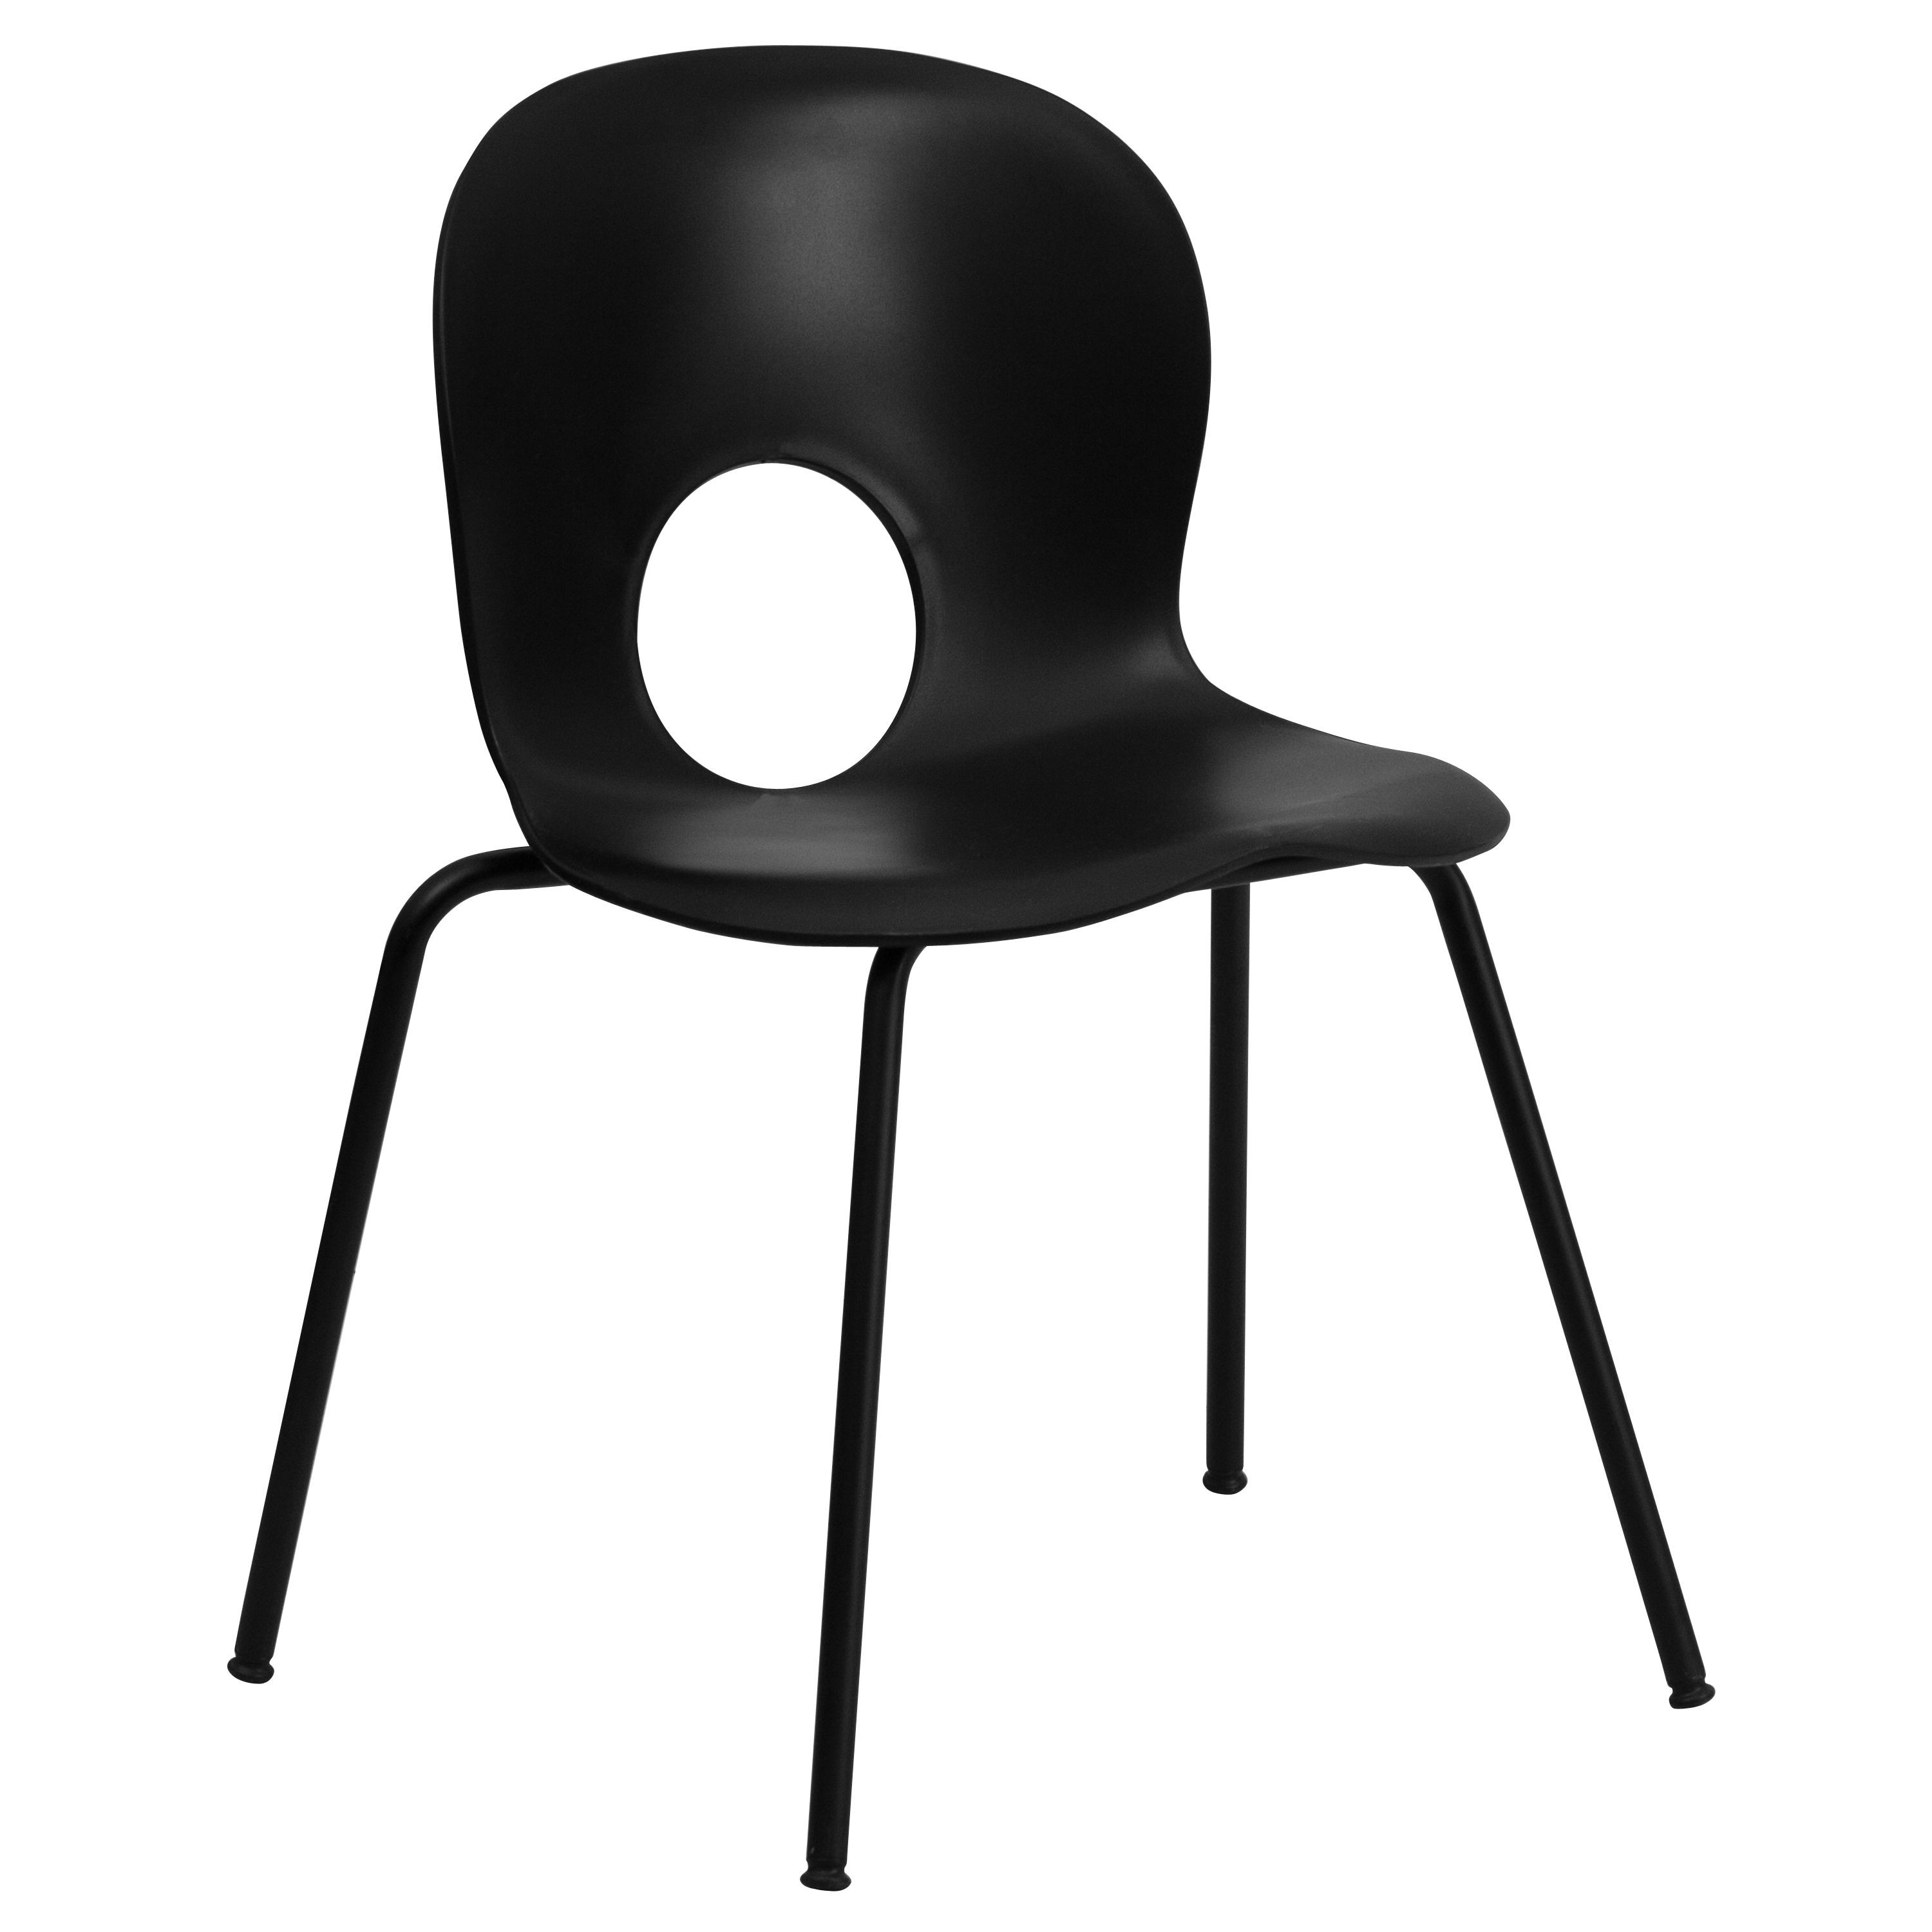 Impact Resistant Designer Black Polypropylene Stack Chair with Black Powder Coated Frame Finish